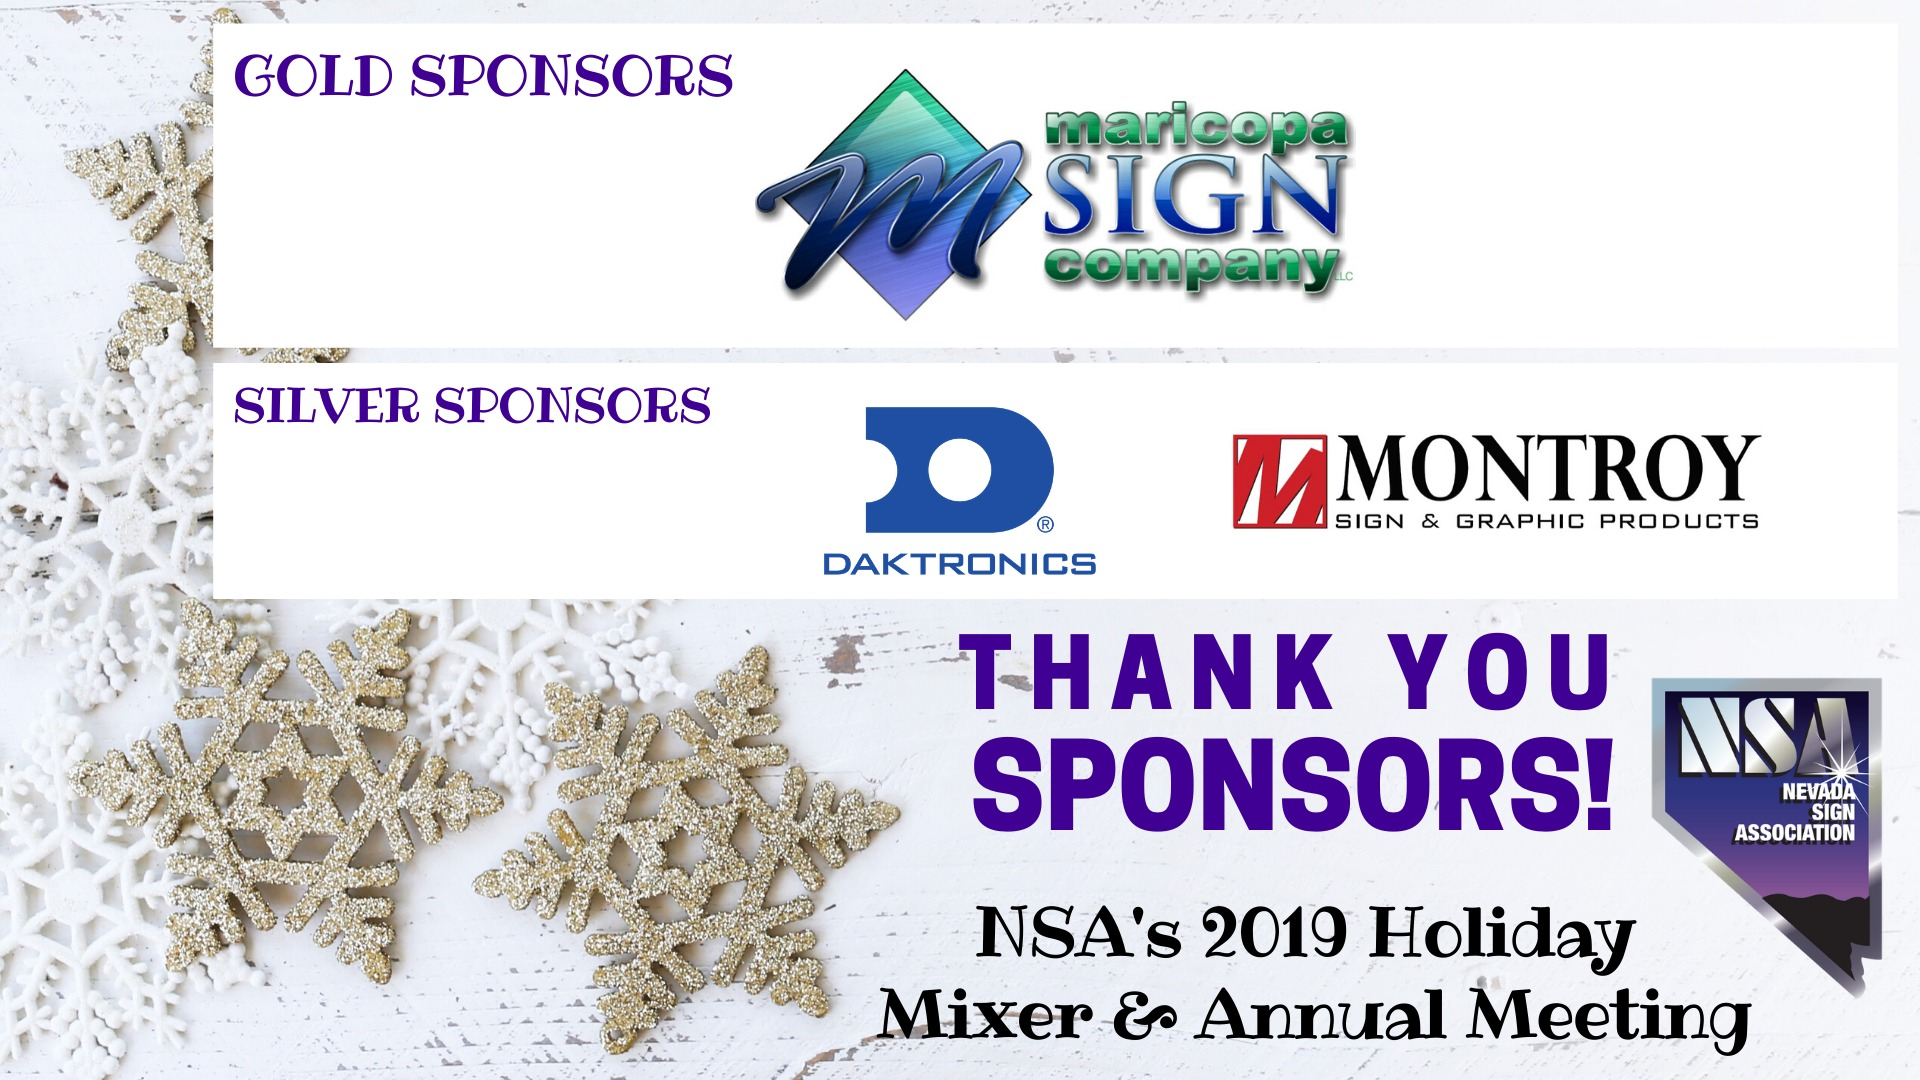 Nsa Holiday Sponsors Thank You Flyer